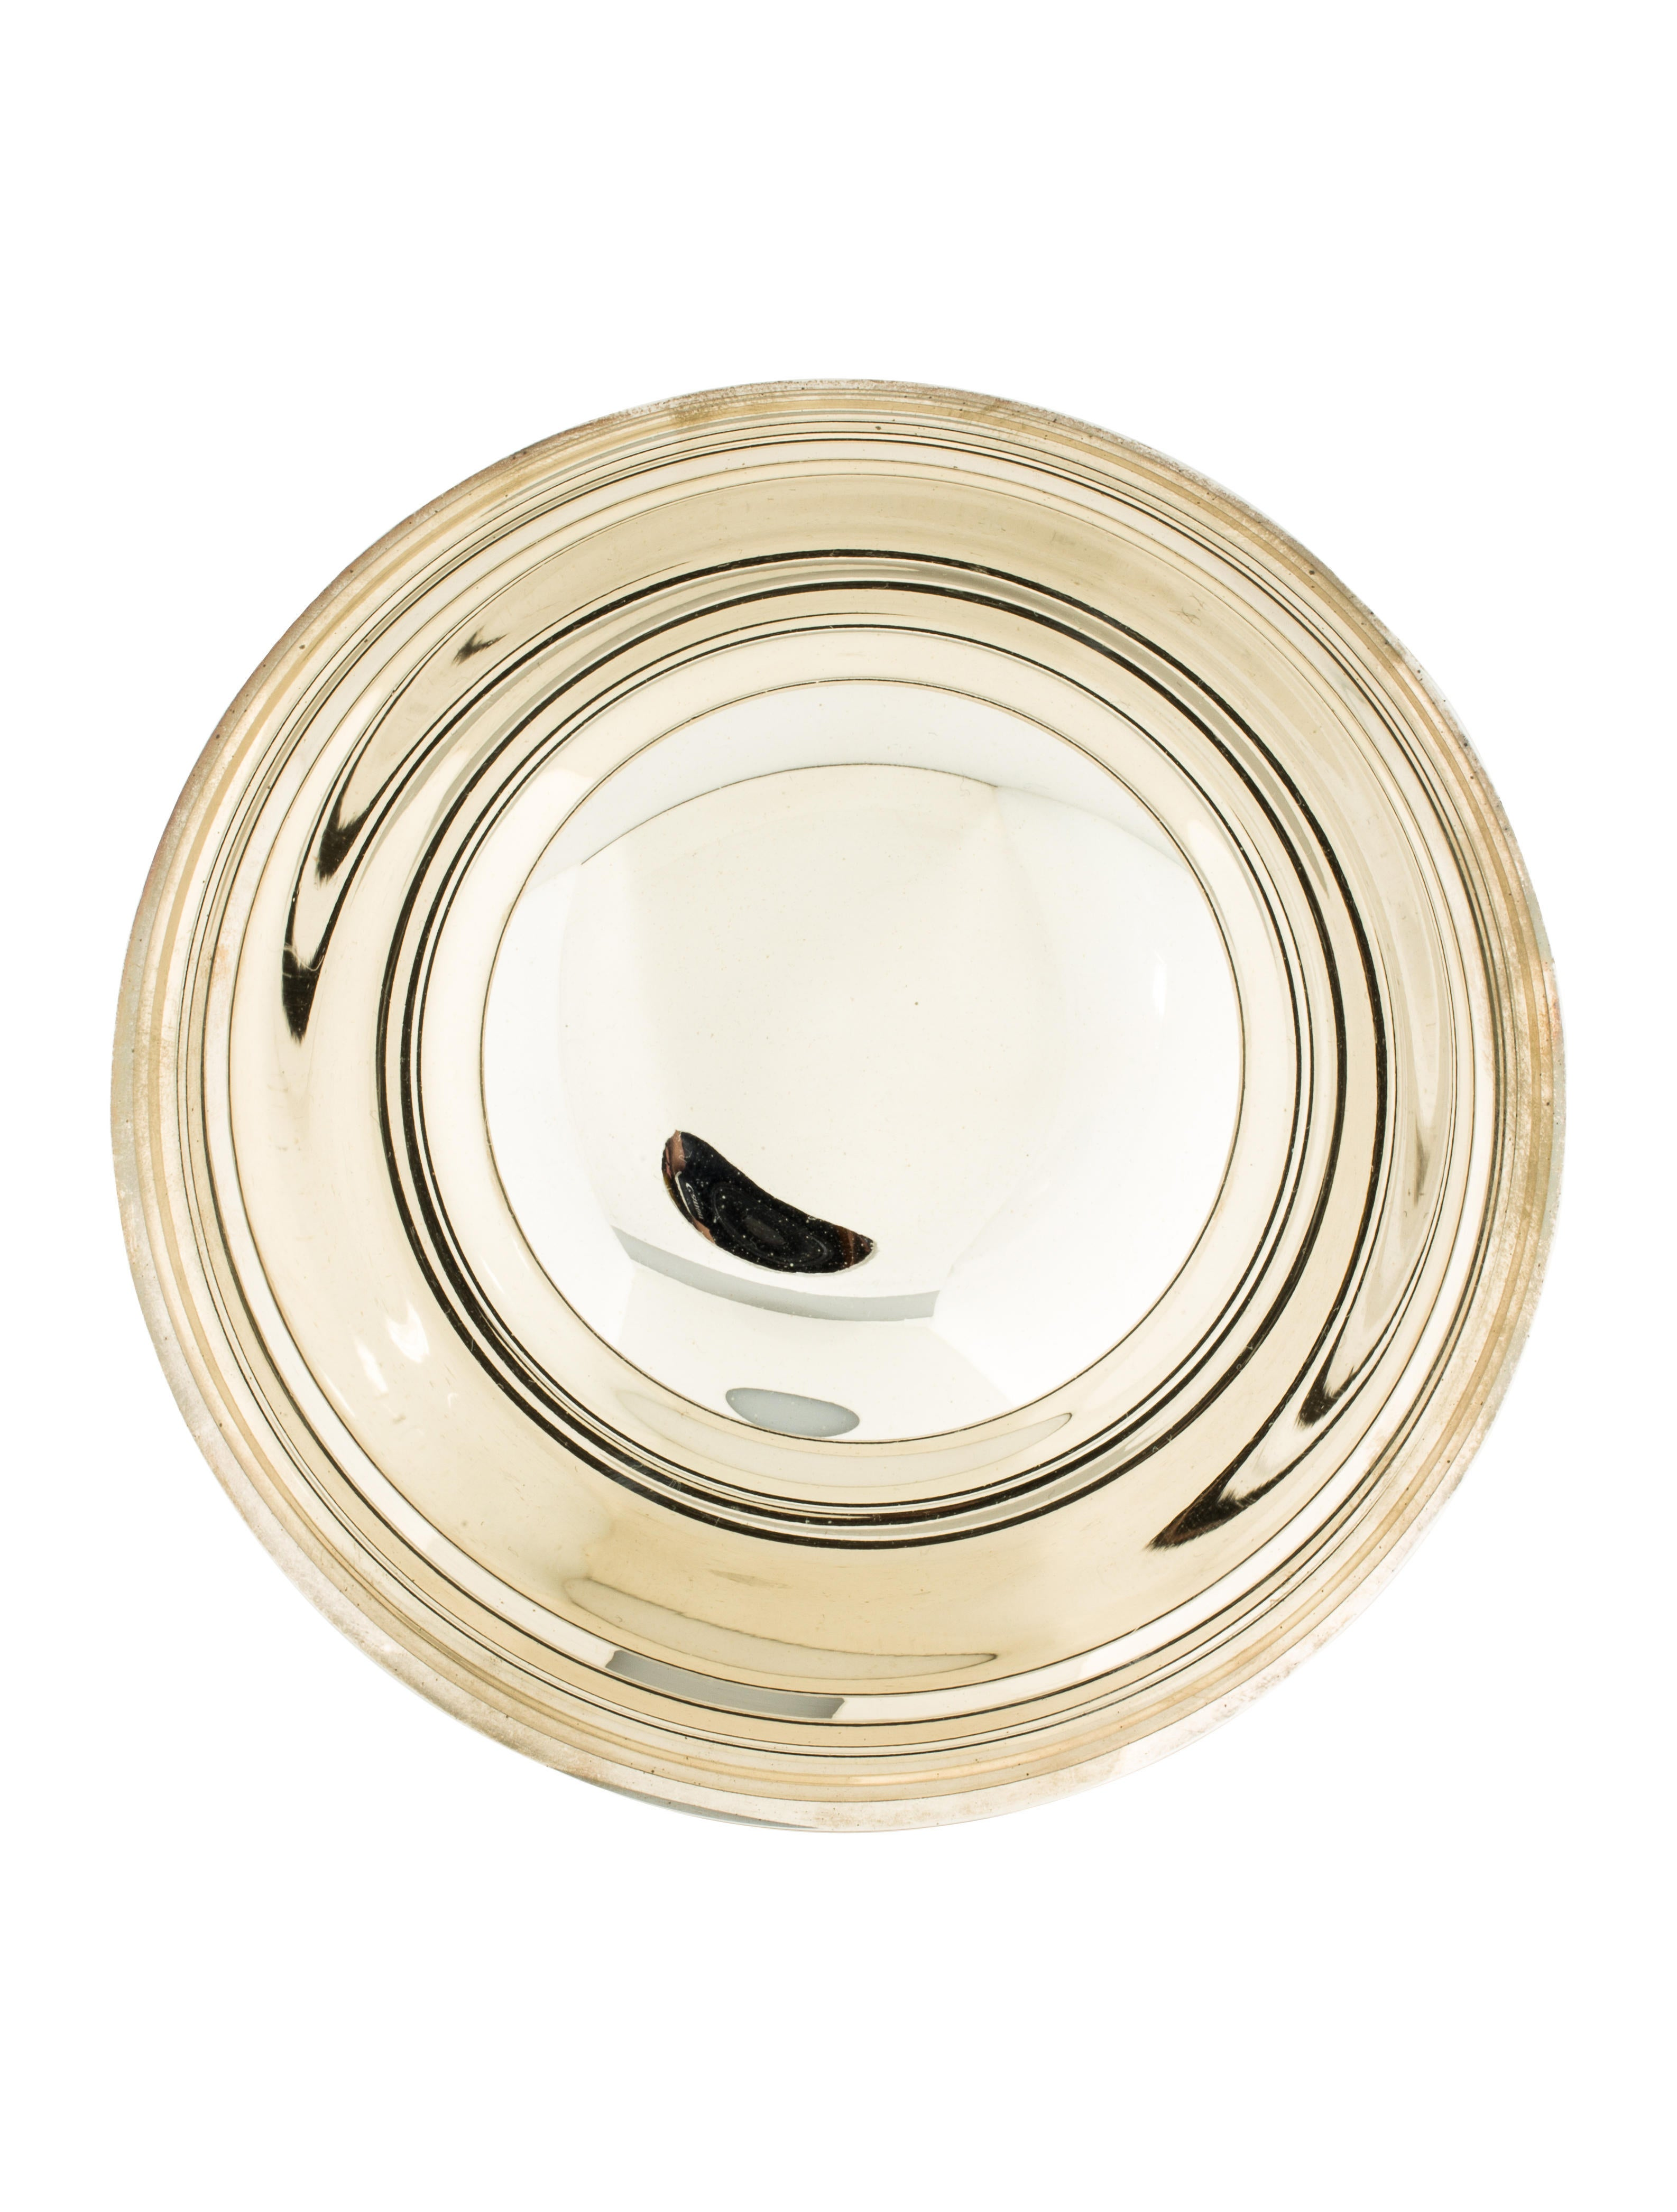 Tiffany co sterling silver bowl decor and accessories for Artistic accents genuine silver decoration